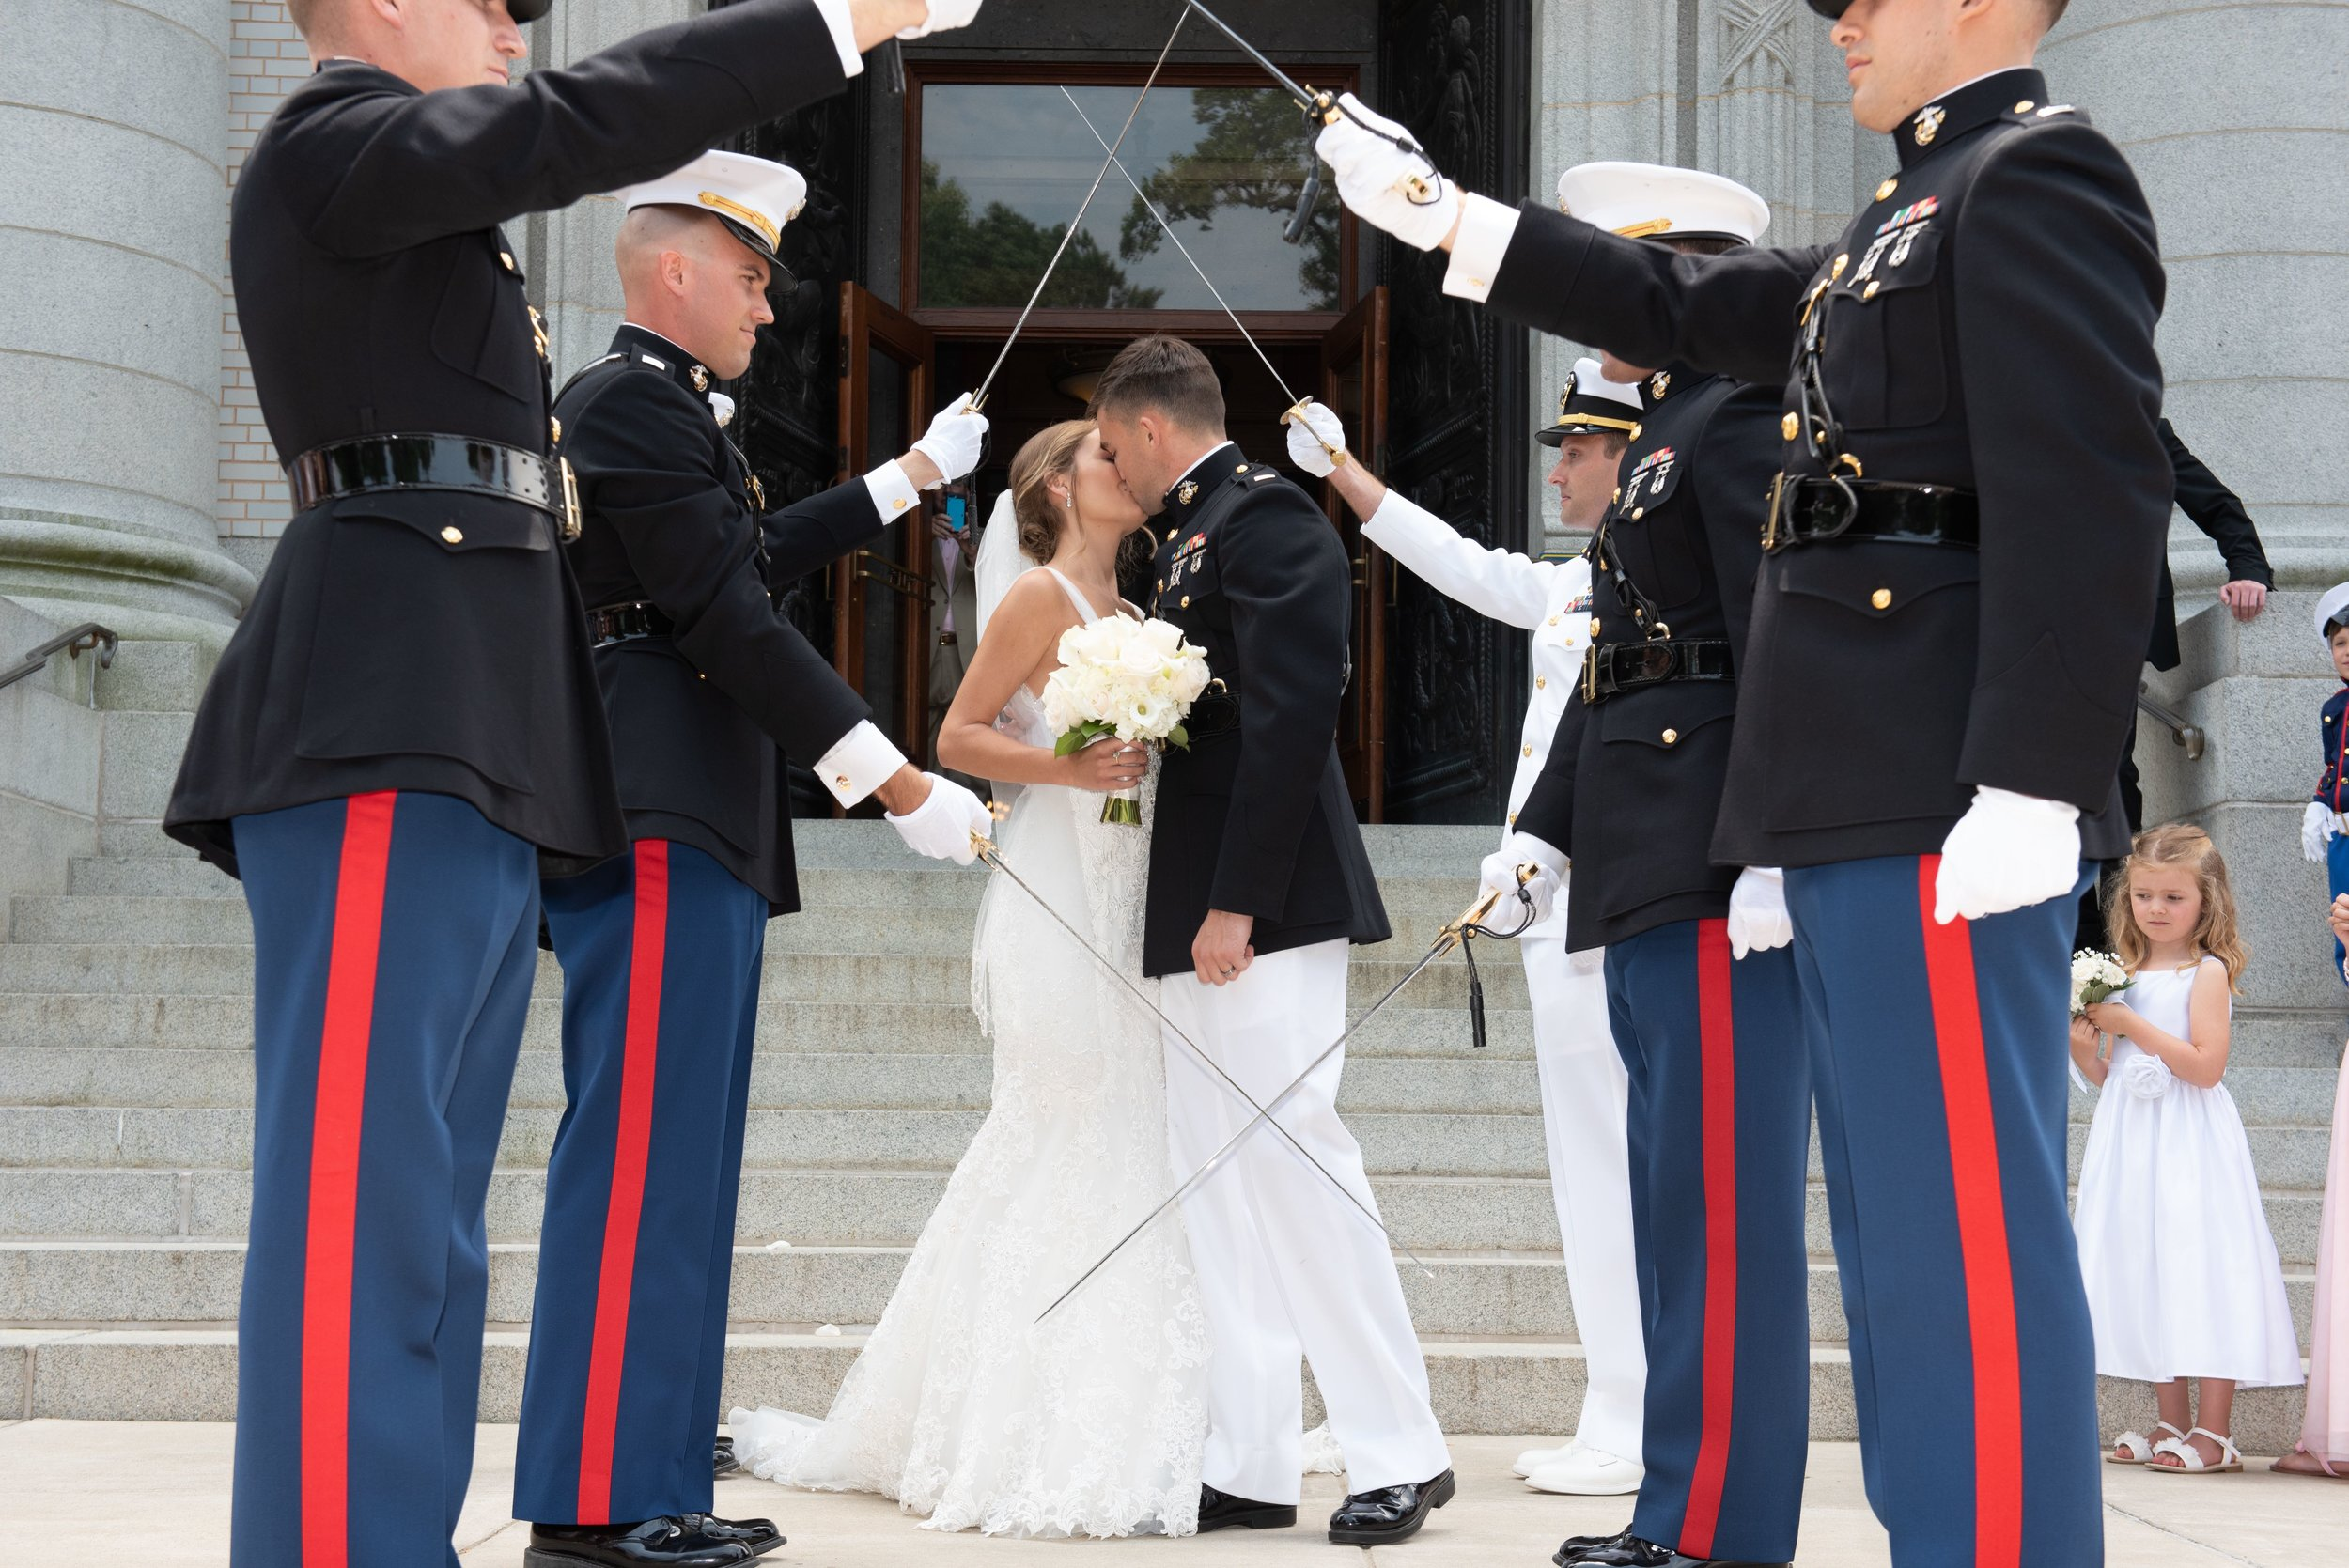 Real Weddings – Military Weddings in Annapolis, Maryland